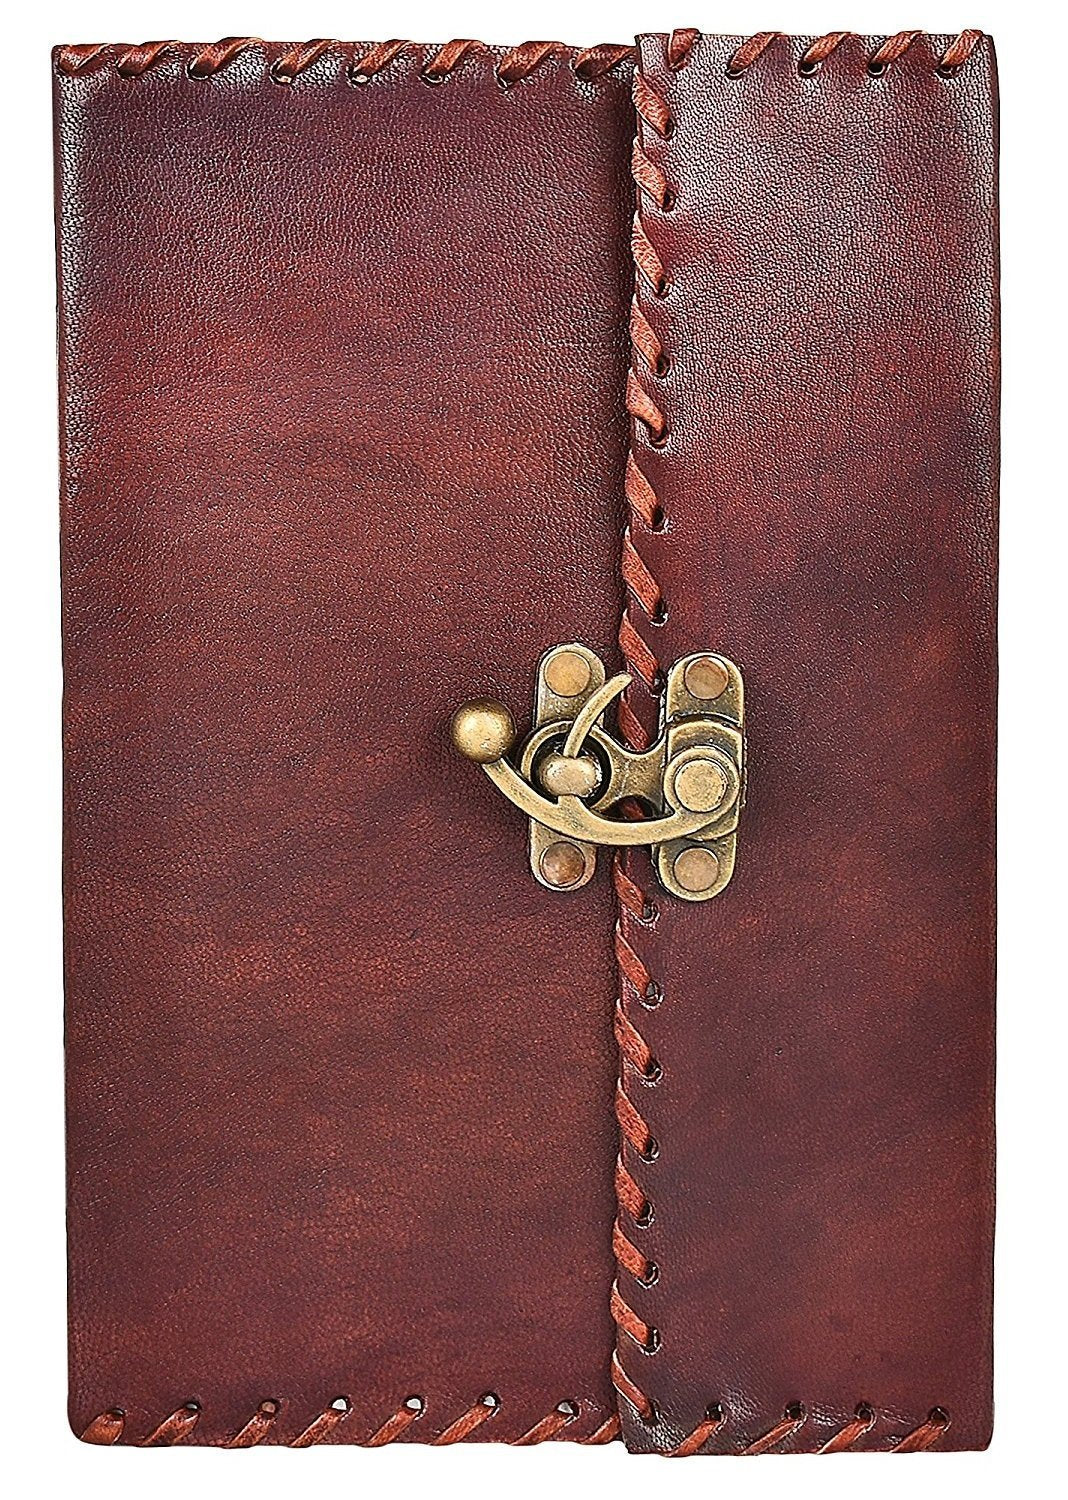 HandMadeCart Vintage Antique Looking Genuine Leather Journal Diary Notebook